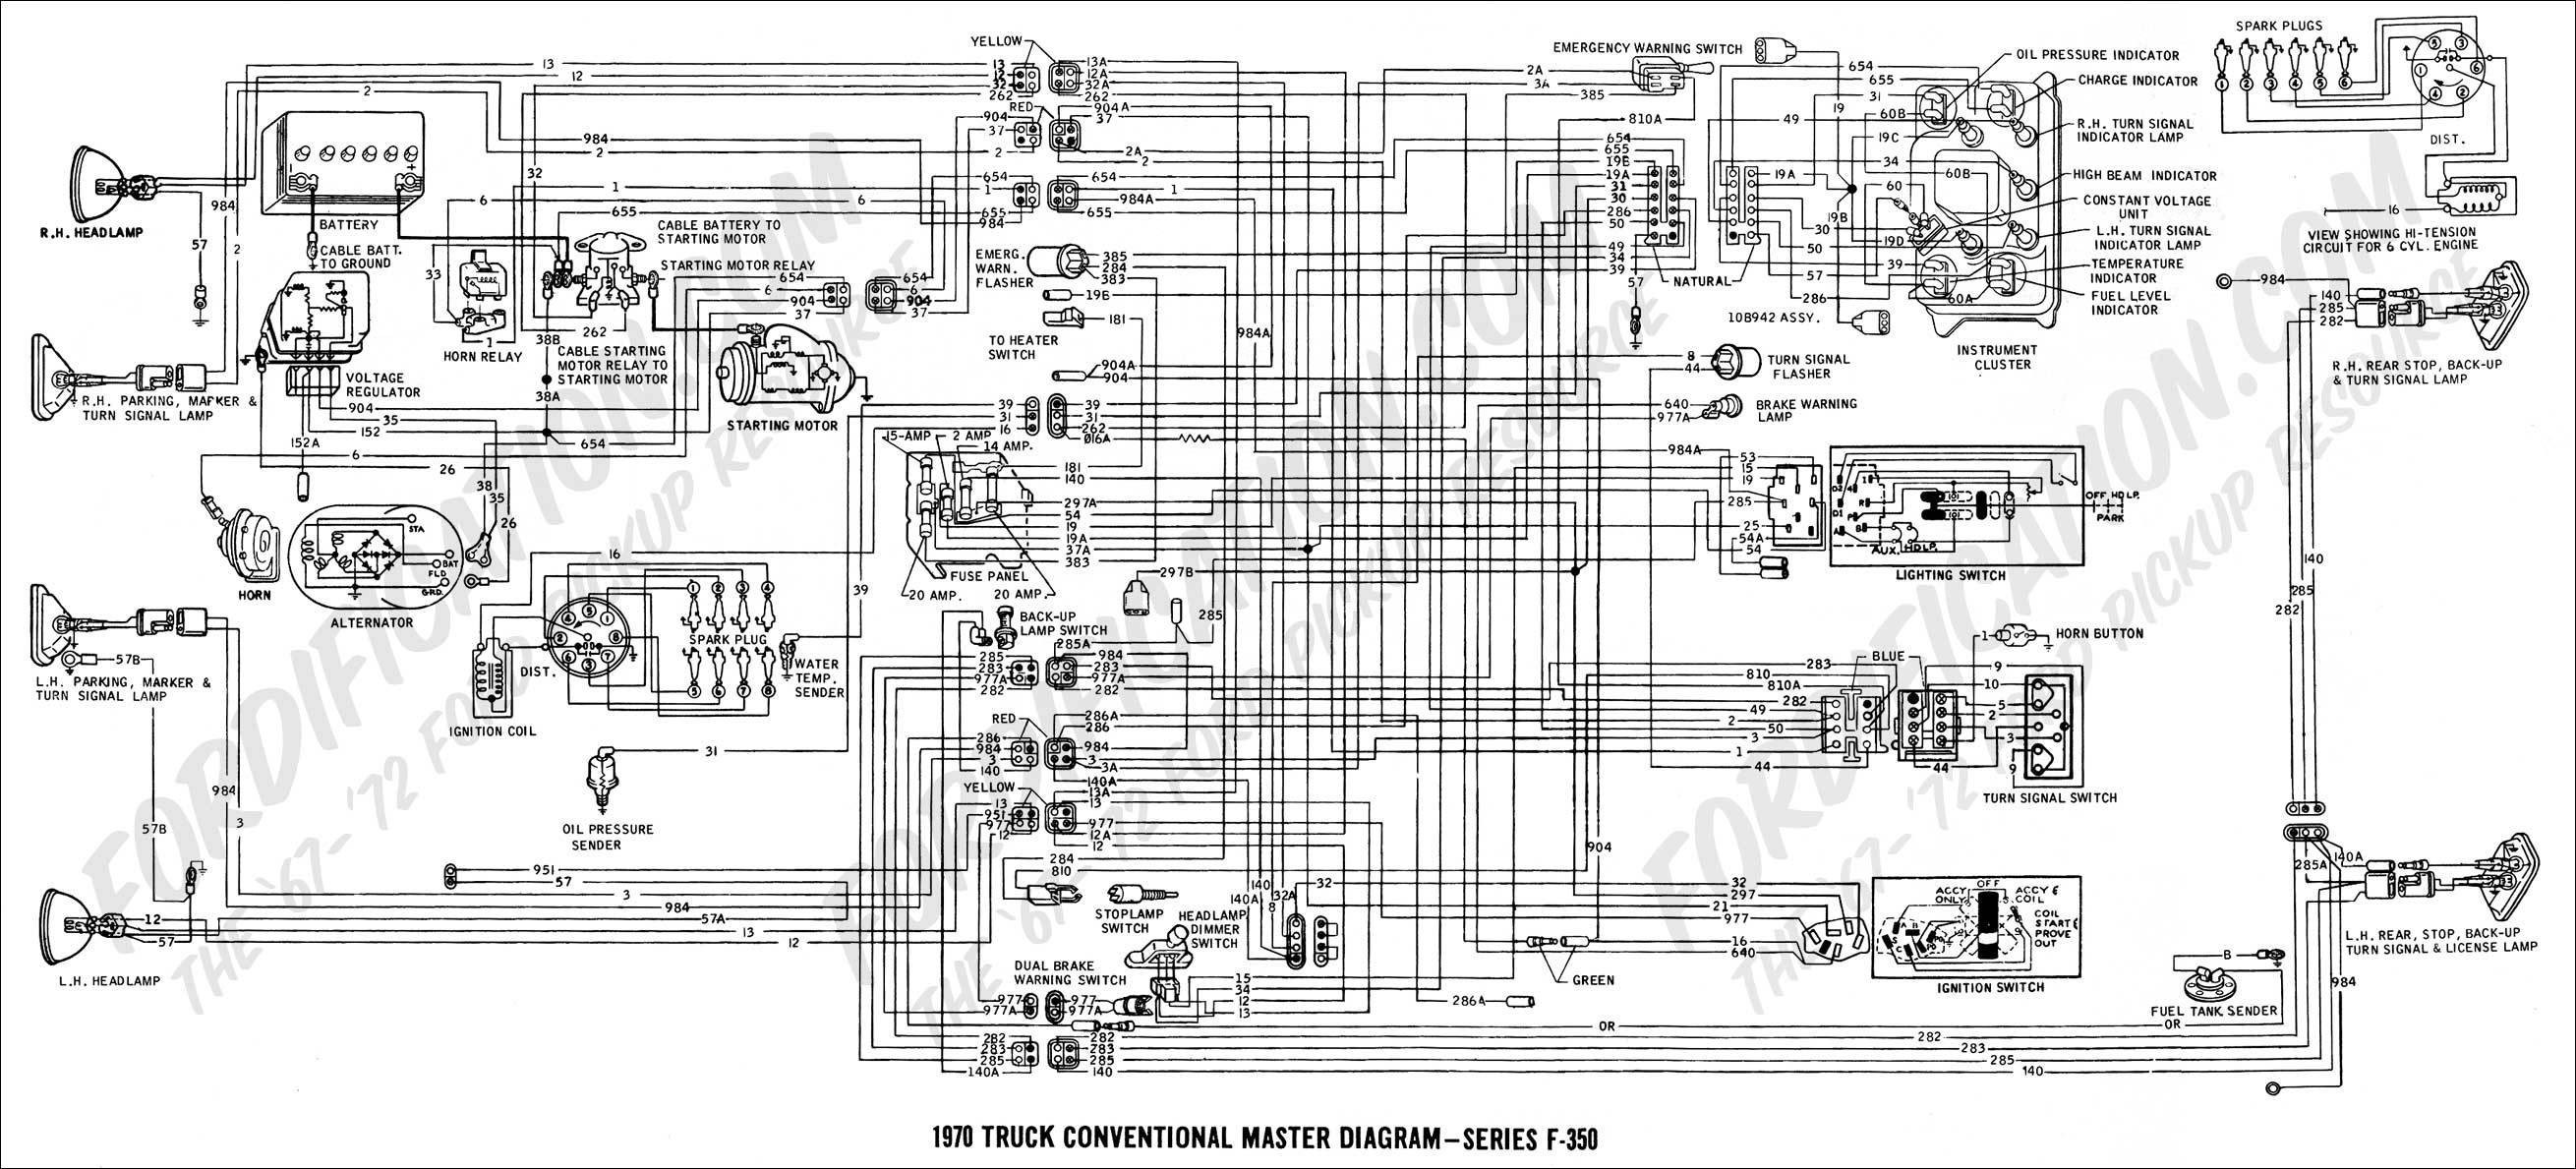 2003 mitsubishi eclipse ignition wiring diagram stress strain for ductile material 2000 stunning 1997